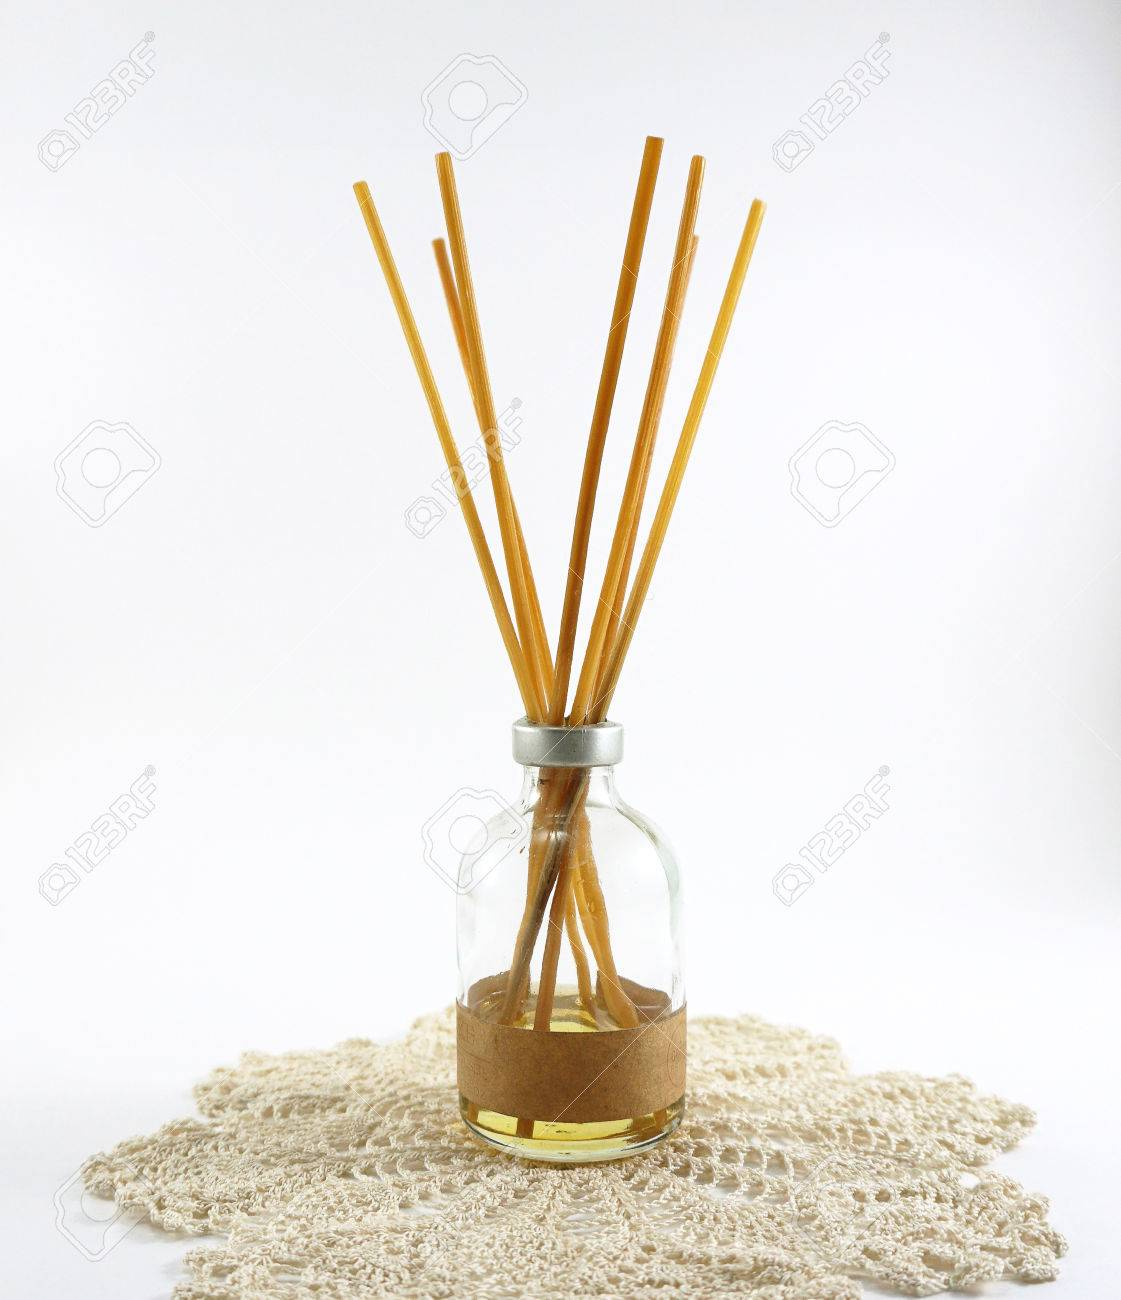 Aroma Diffuser Sticks In Glass Bottle On Crochet Mat On White Stock Photo Picture And Royalty Free Image Image 39735115